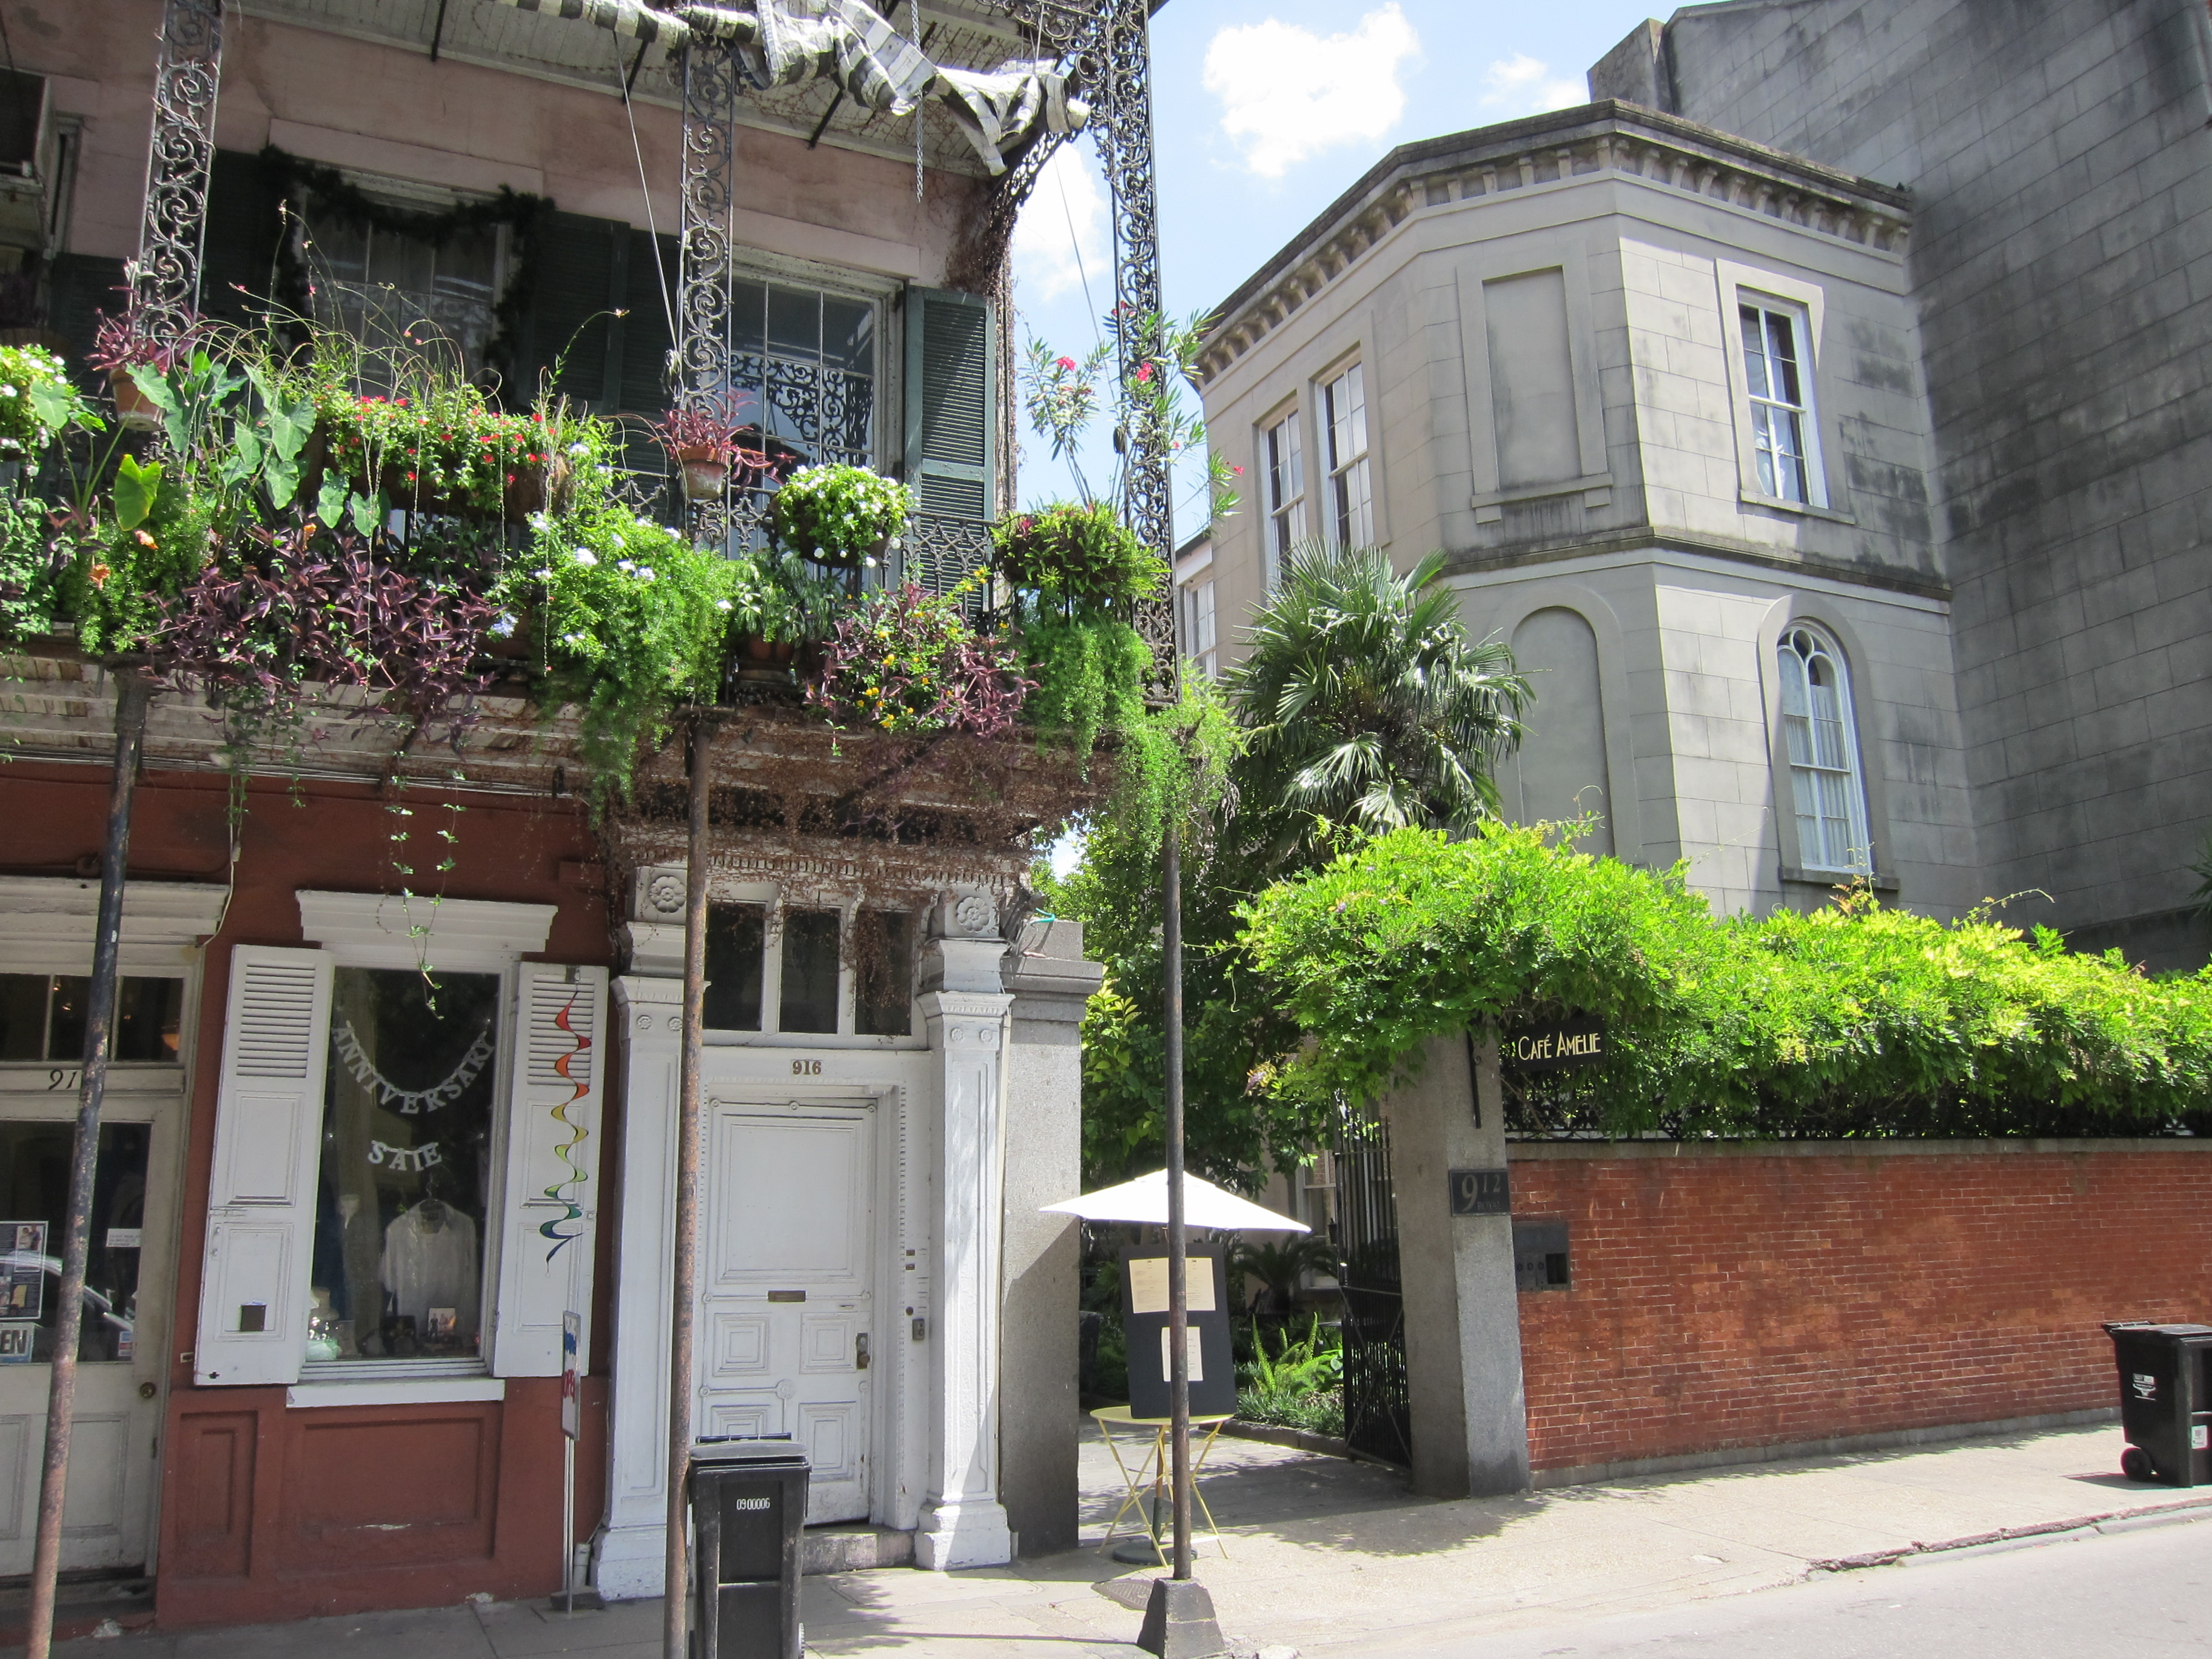 Cafe Amelie French Quarter New Orleans